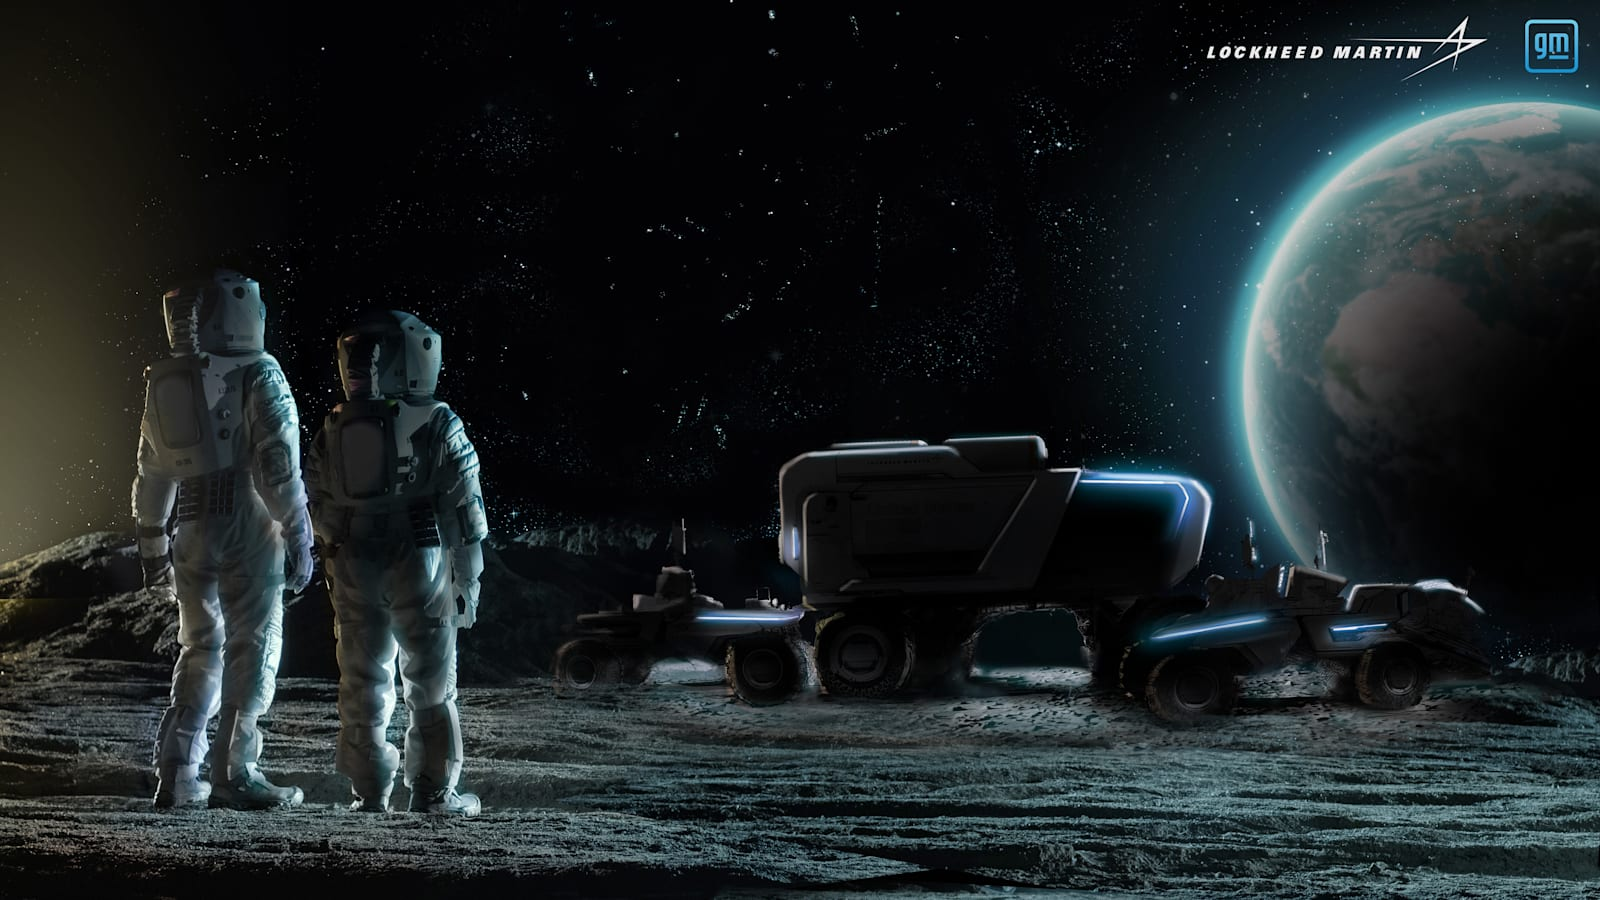 GM to help develop the next generation of lunar vehicles for NASA